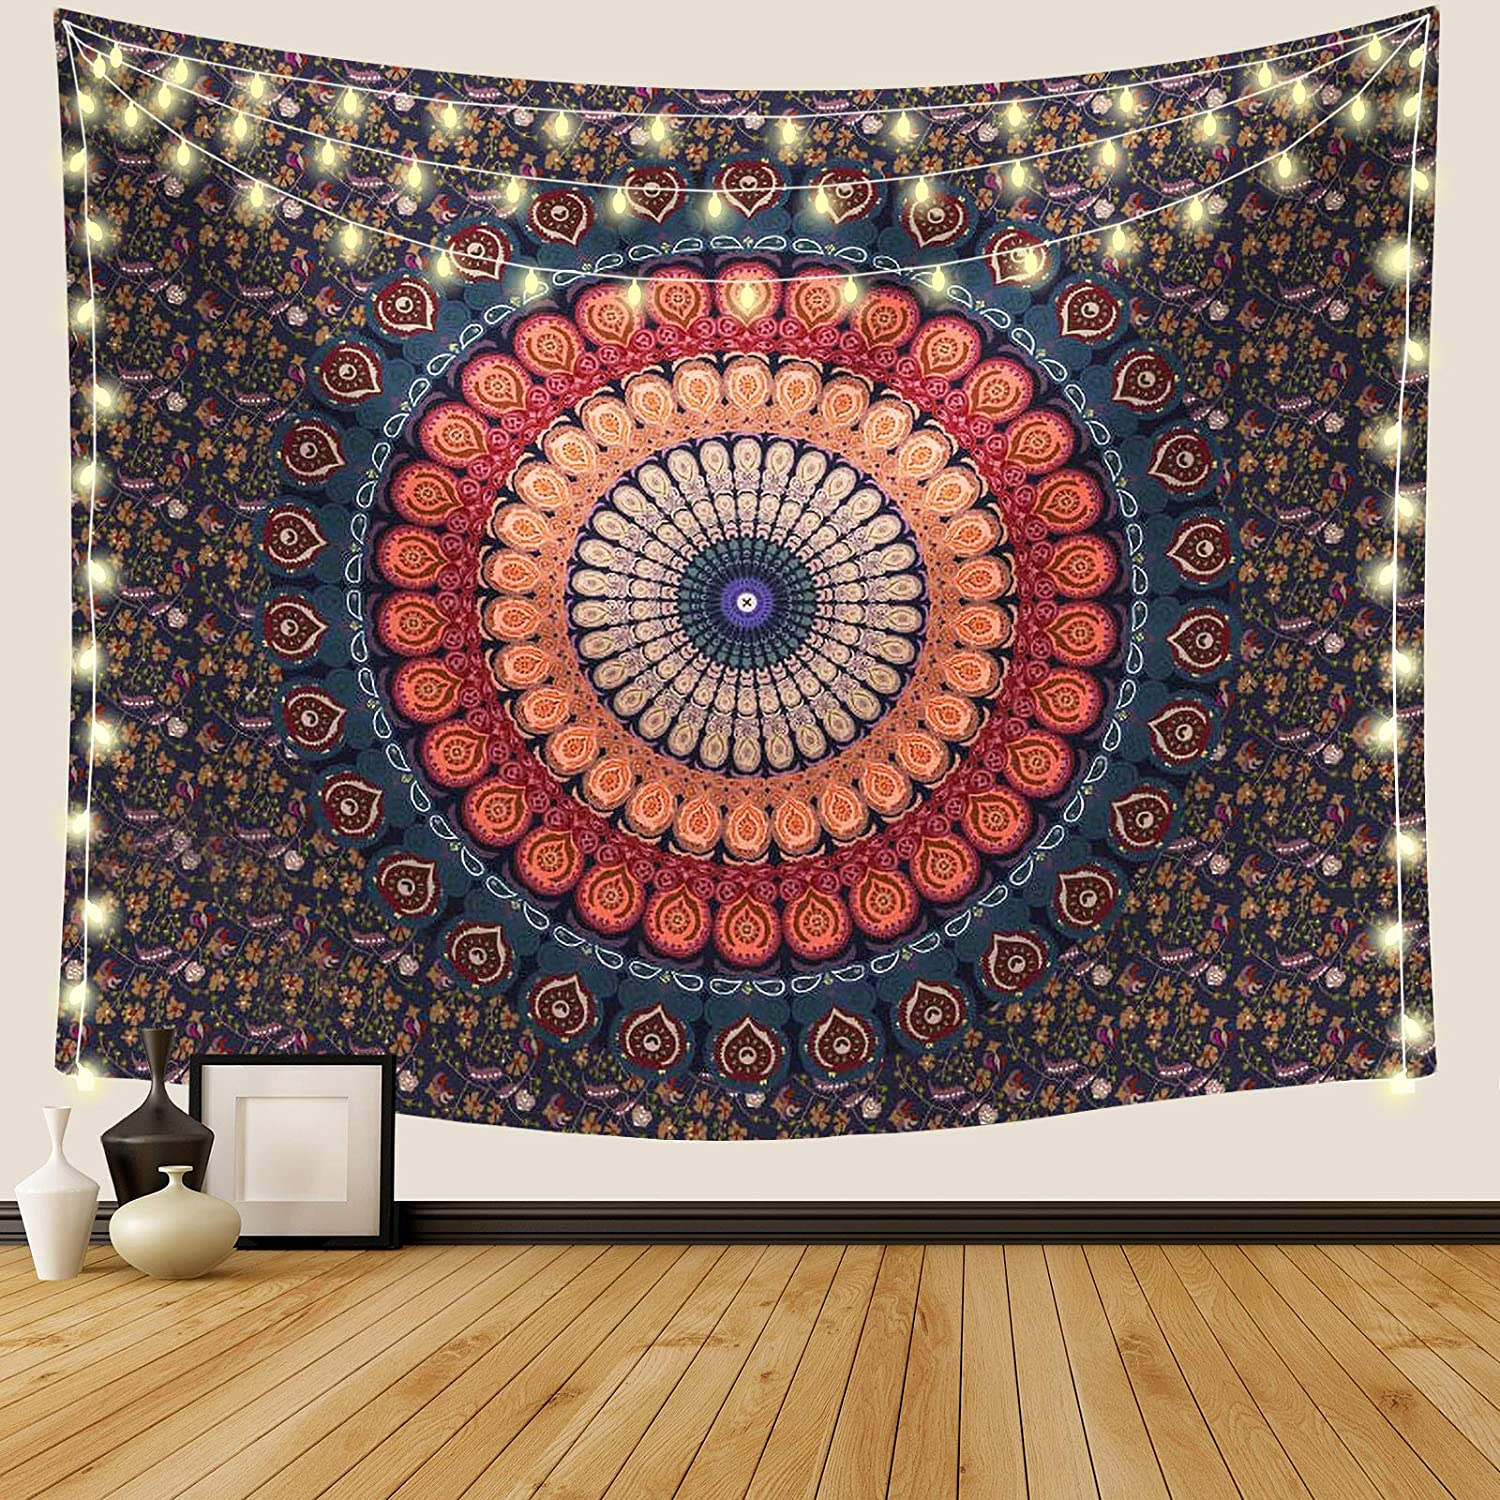 Ftuency Mandala Tapestry, Indian Hippie Bohemian Psychedelic Tapestries Women Peacock Wall Hanging for Bedroom Teen Girl (59